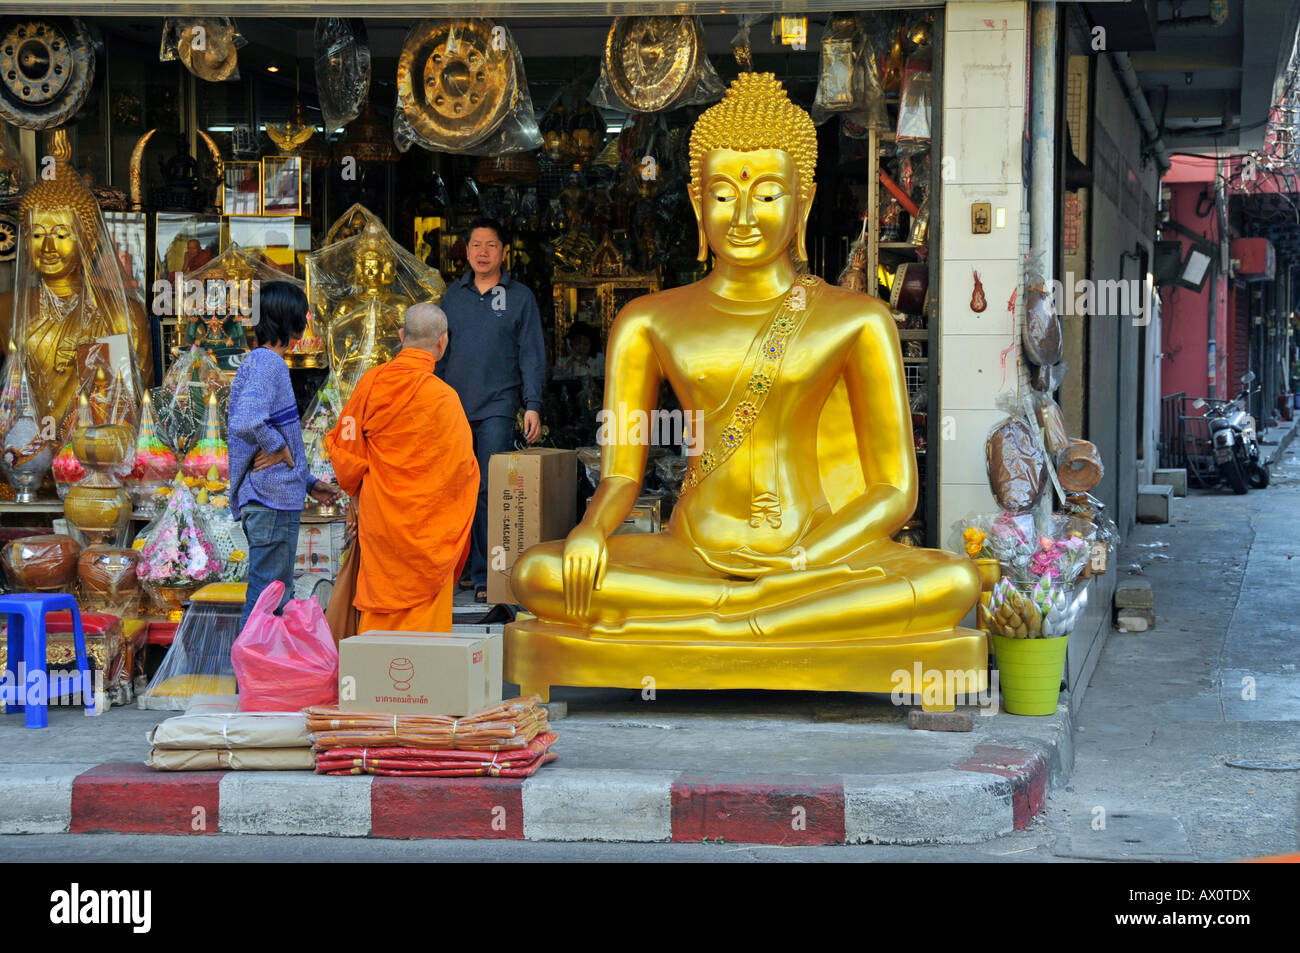 Buddha statues and other devotional objects for sale along Bamrung Muang Road, Bangkok, Thailand, Southeast Asia - Stock Image